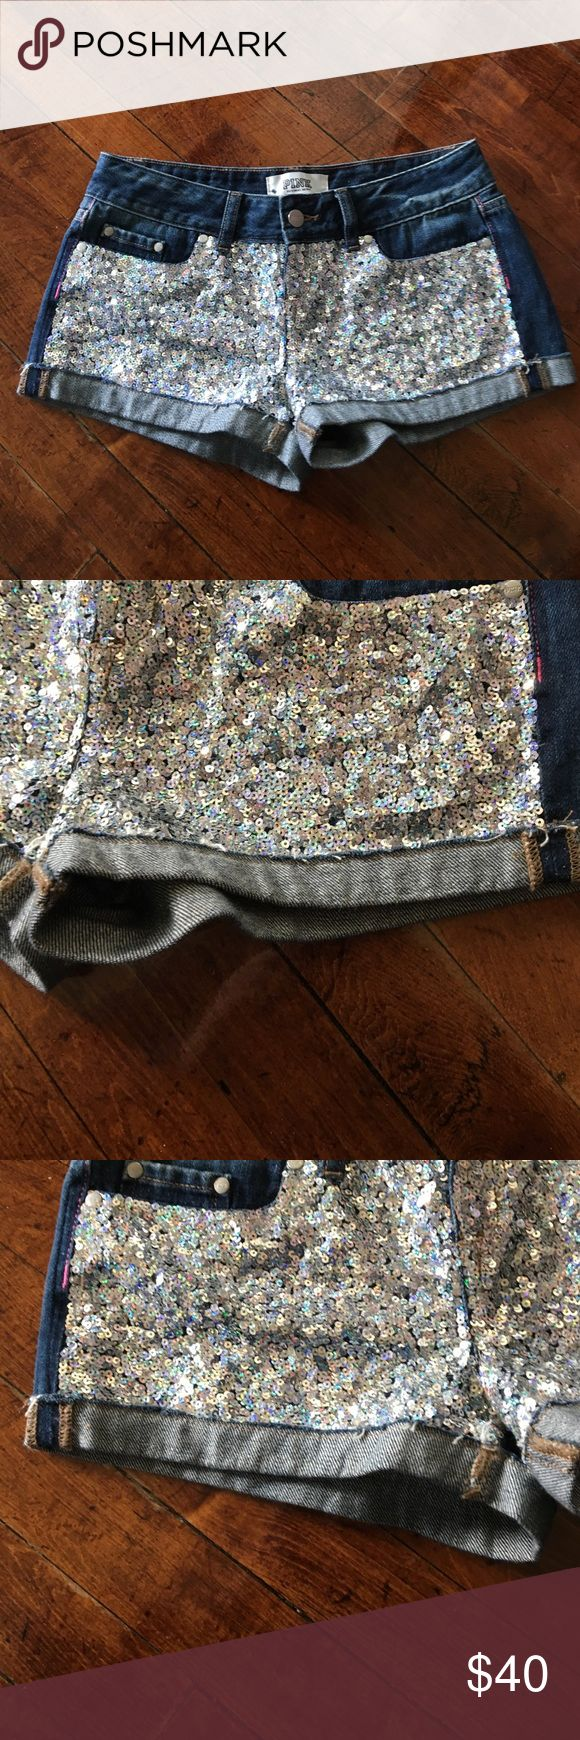 PINK Sparkle Shorts PINK By Victoria Secret silver sequin shorts. Size 0. Fraying around bottom of shorts on the fold over part. In good condition. Very cute for summertime! ☀️️🌺 PINK Victoria's Secret Shorts Jean Shorts